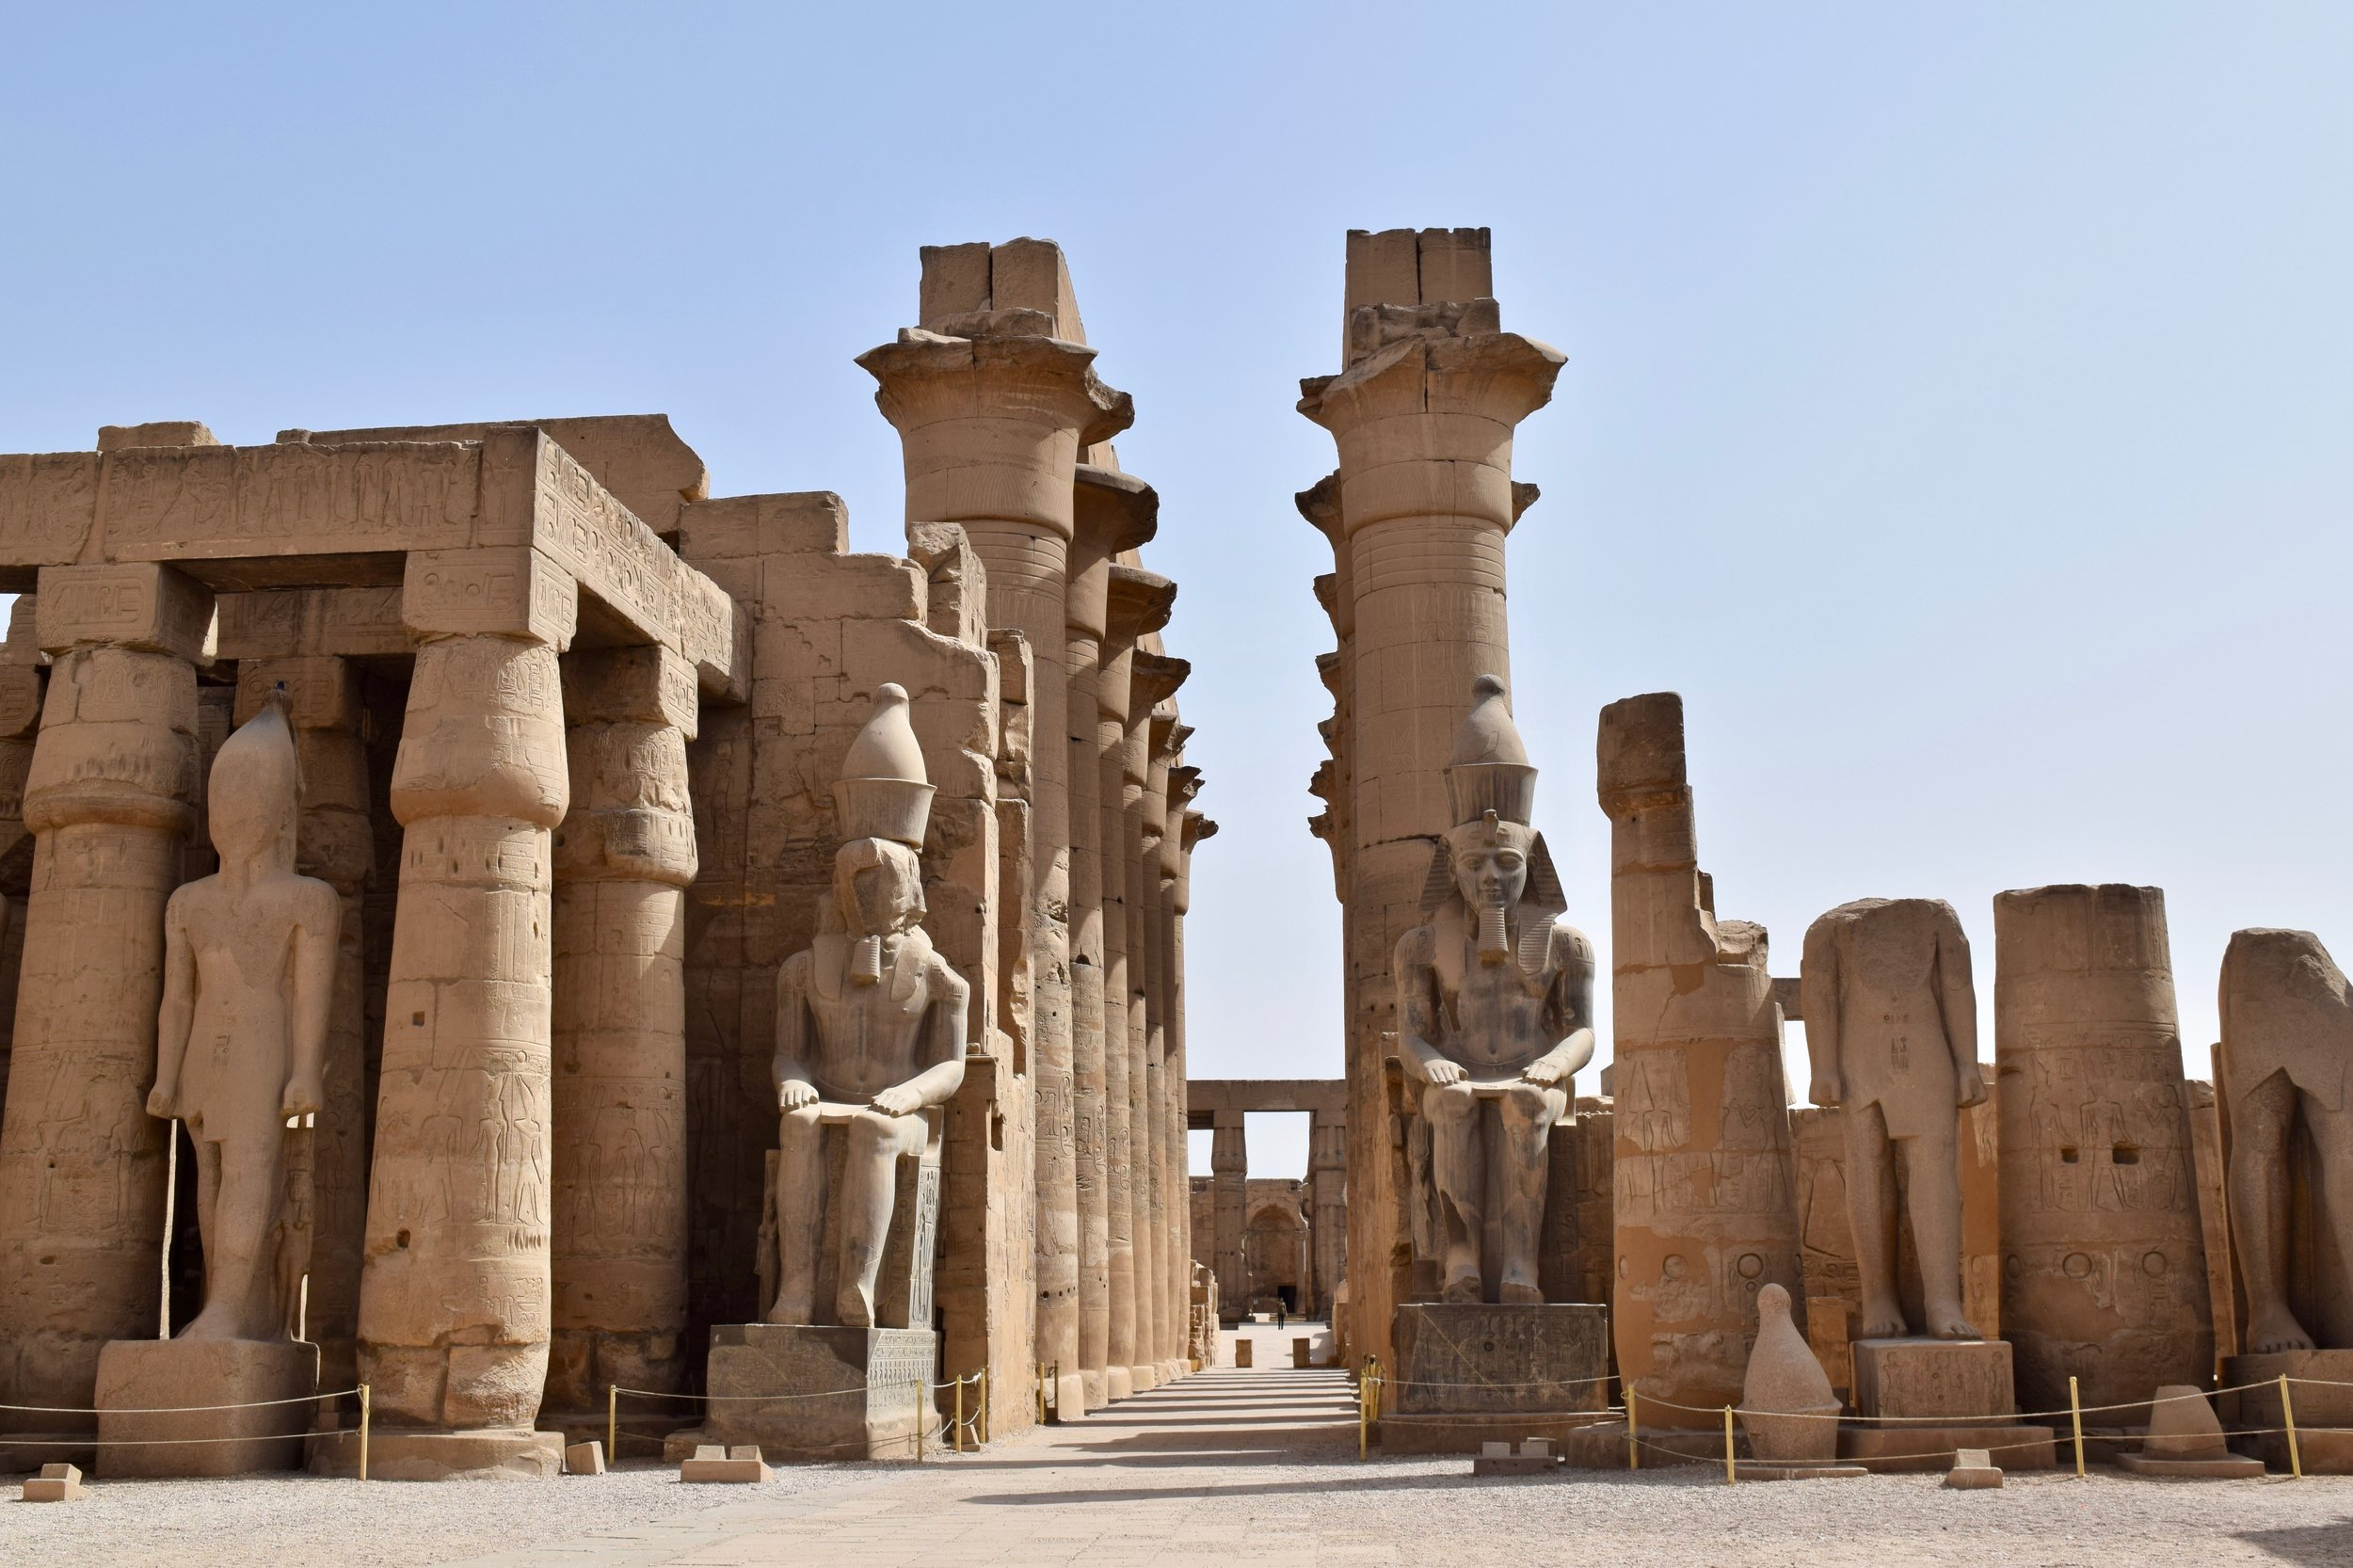 Seated statues of the Pharaoh